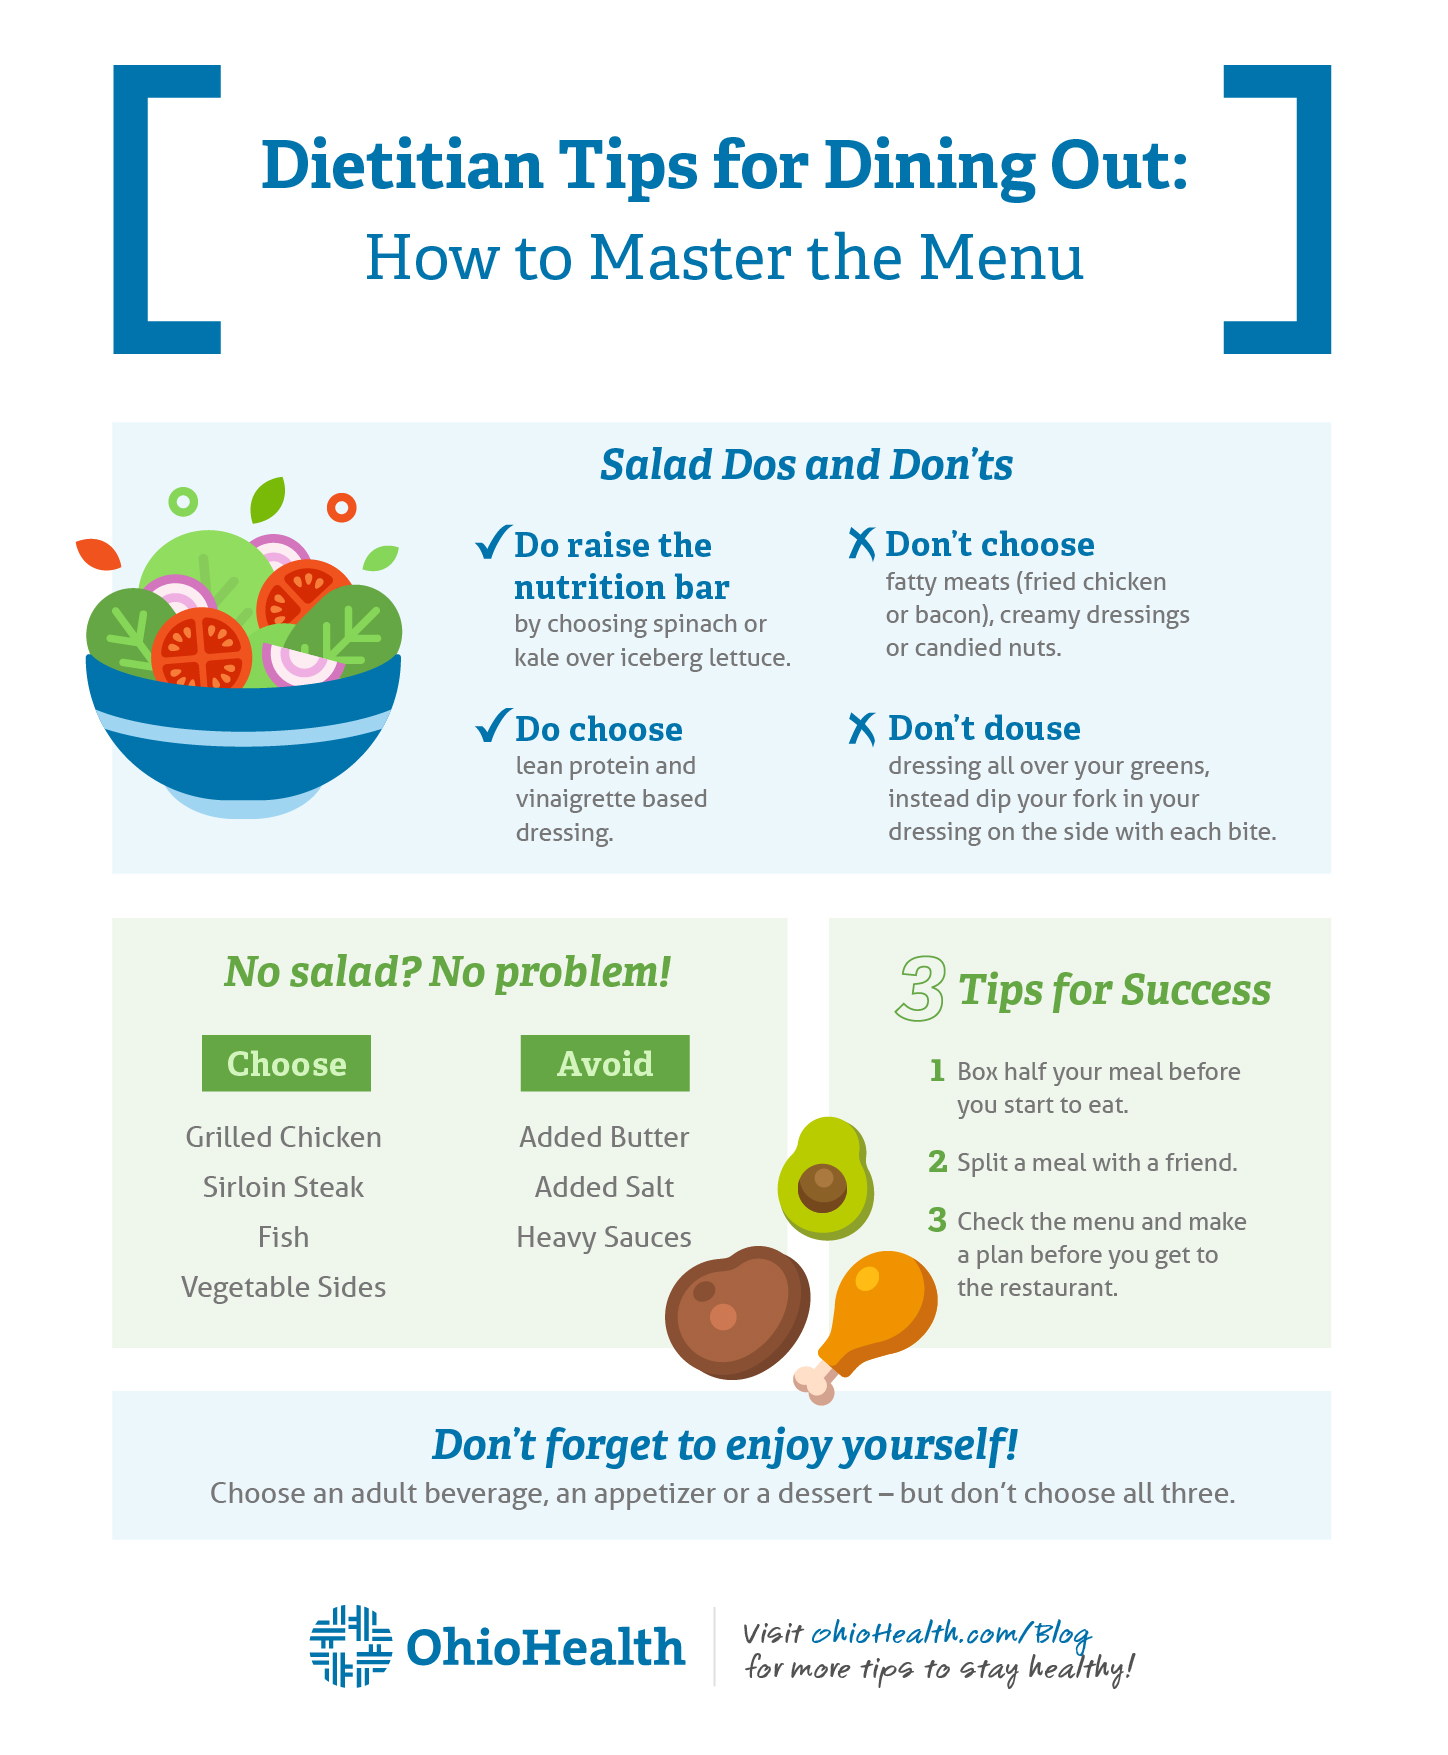 Dietitians Tips for Dining Out